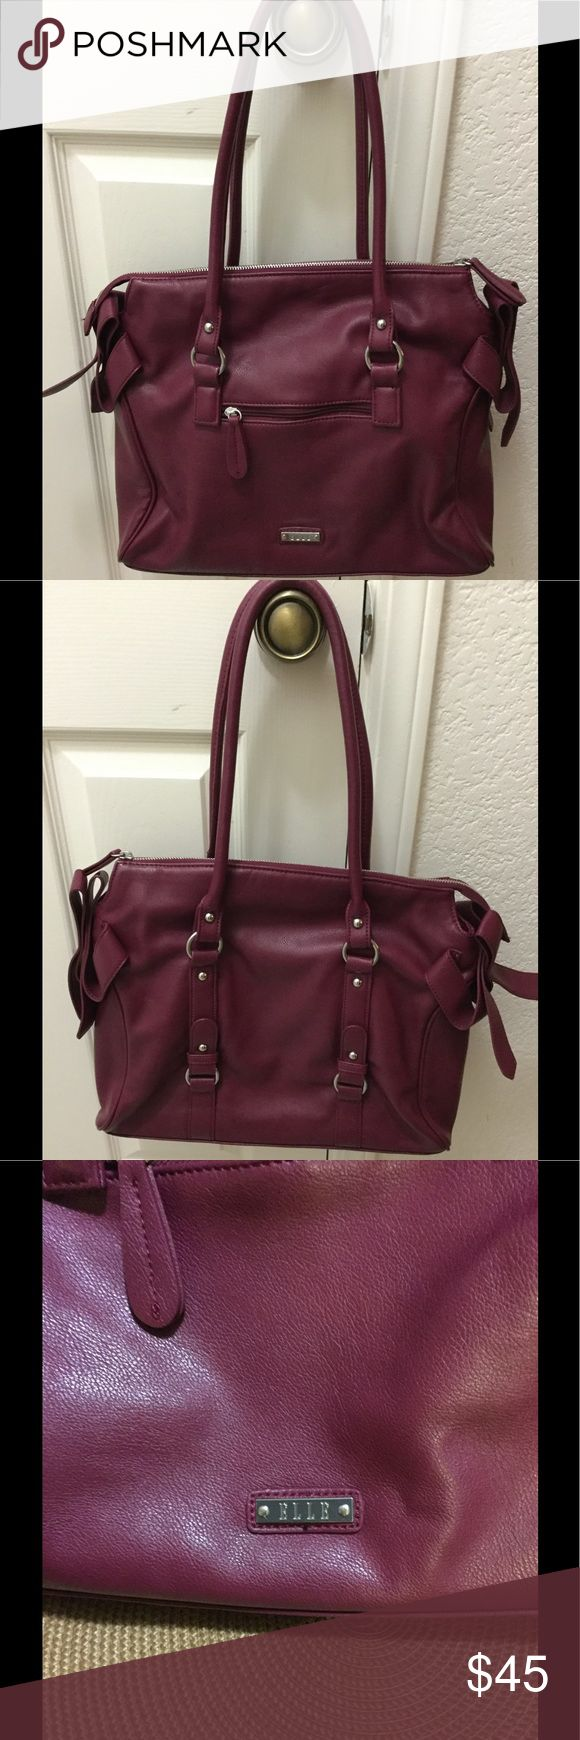 """Elle Shoppers bag. Elle Shoppers bag in a gorgeous raspberry, its in like new condition with no flaws, super clean inside with just a tiny spot. Smooth zipper closure, one zipper pocket inside with two slots to organize you. 9"""" strap drop. Fun polka dot interior. A must have!! Bags Shoulder Bags"""